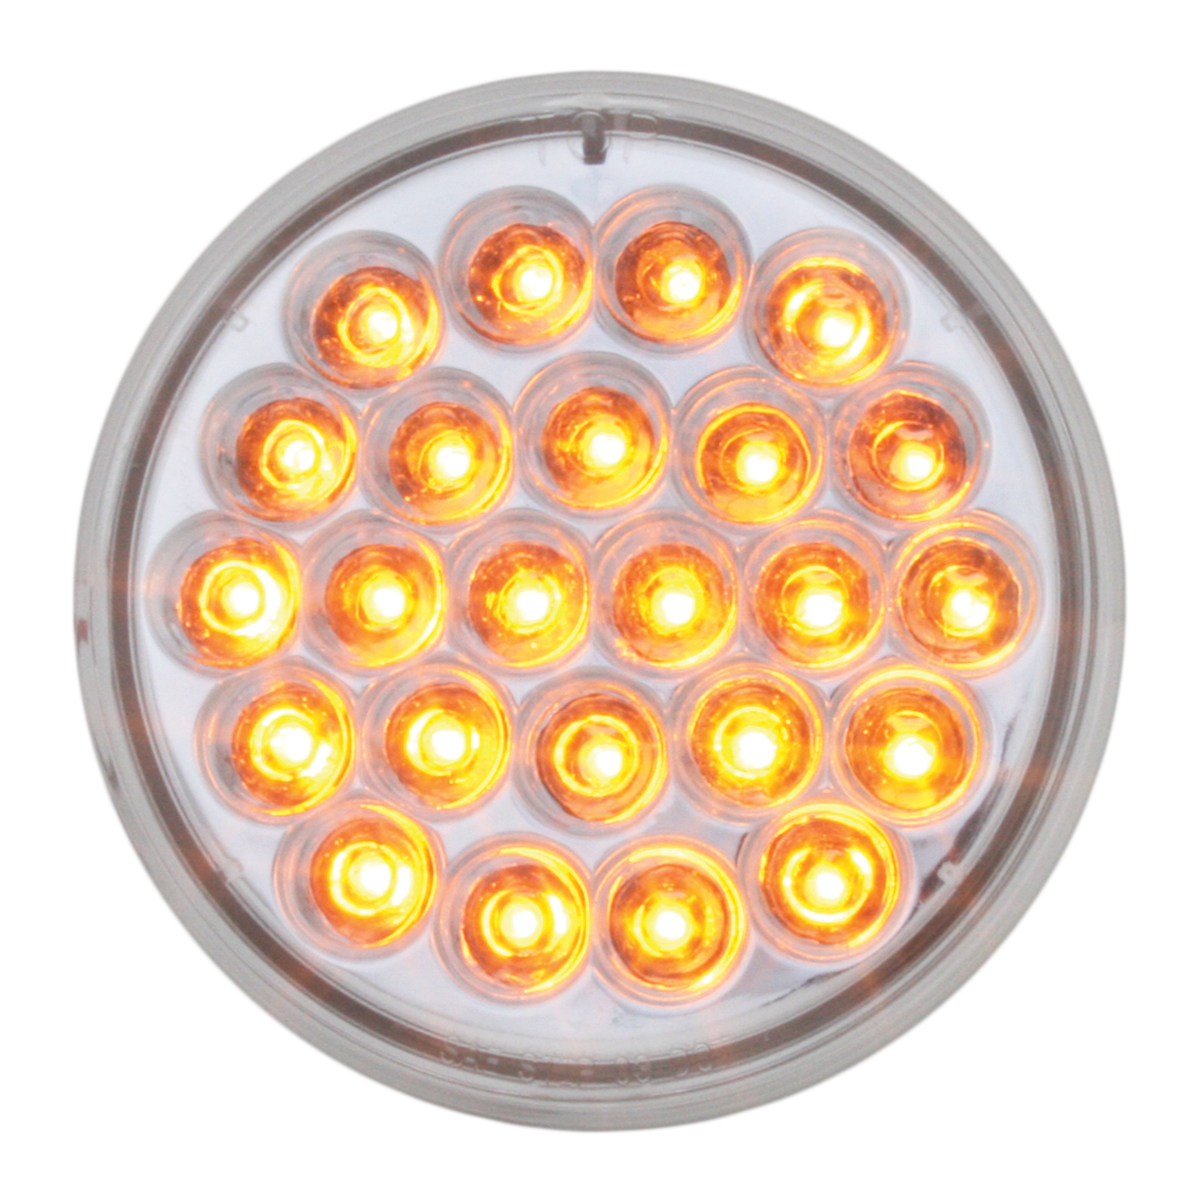 "78271 4"" Pearl LED Light in Amber/Clear"